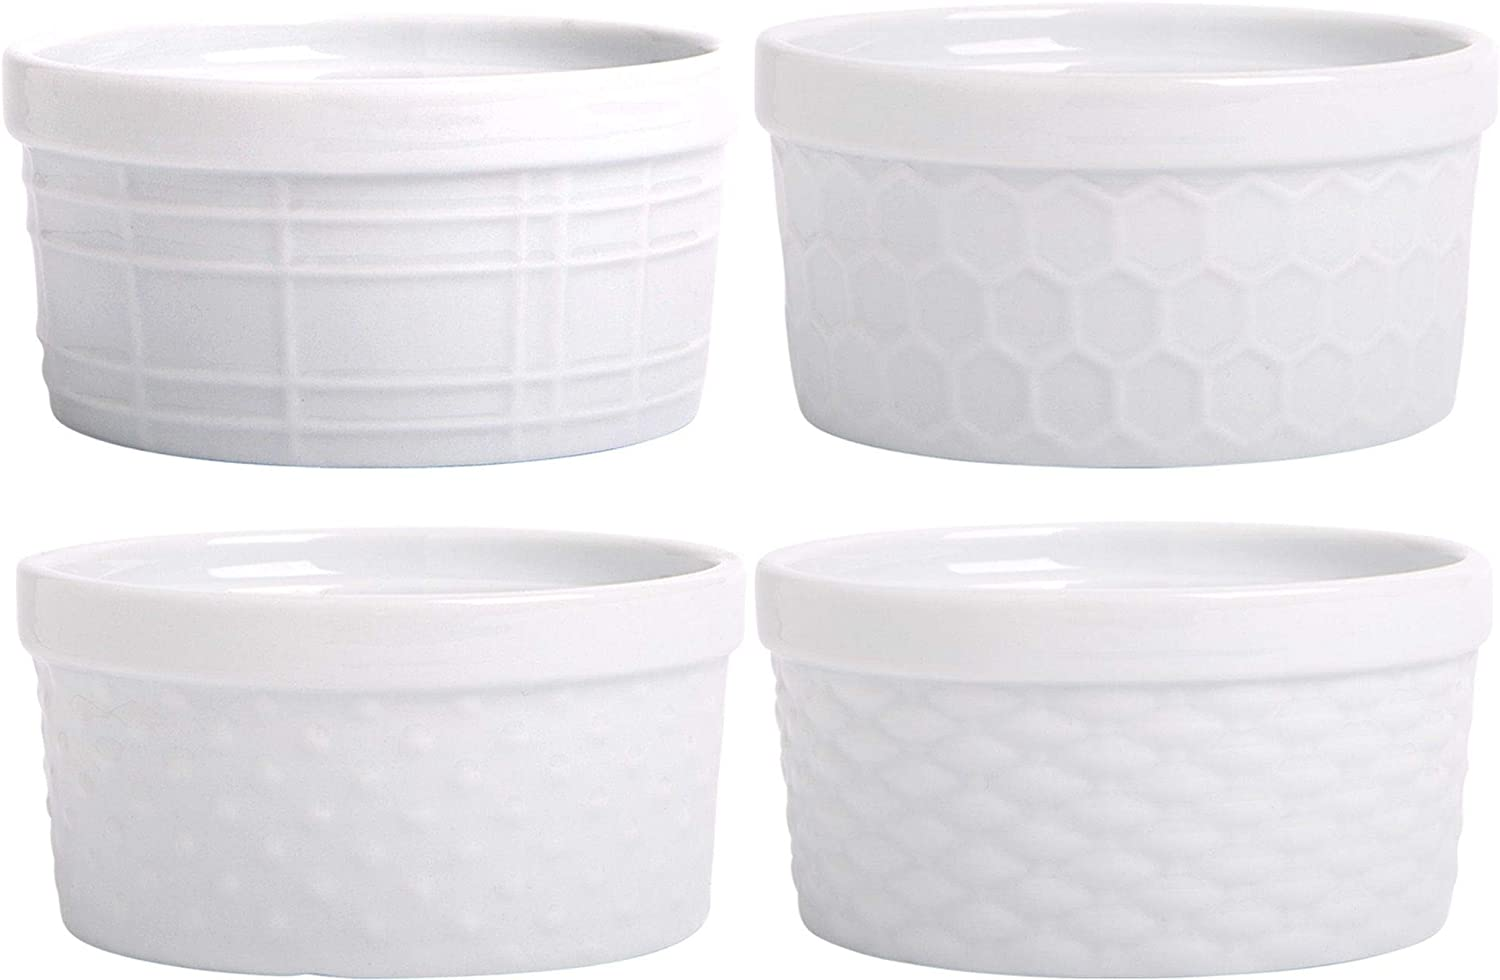 Palais Dinnerware Ramekins Collection Porcelain Soufle Dishes (8 Oz - Set of 4, White - Assorted Finish)